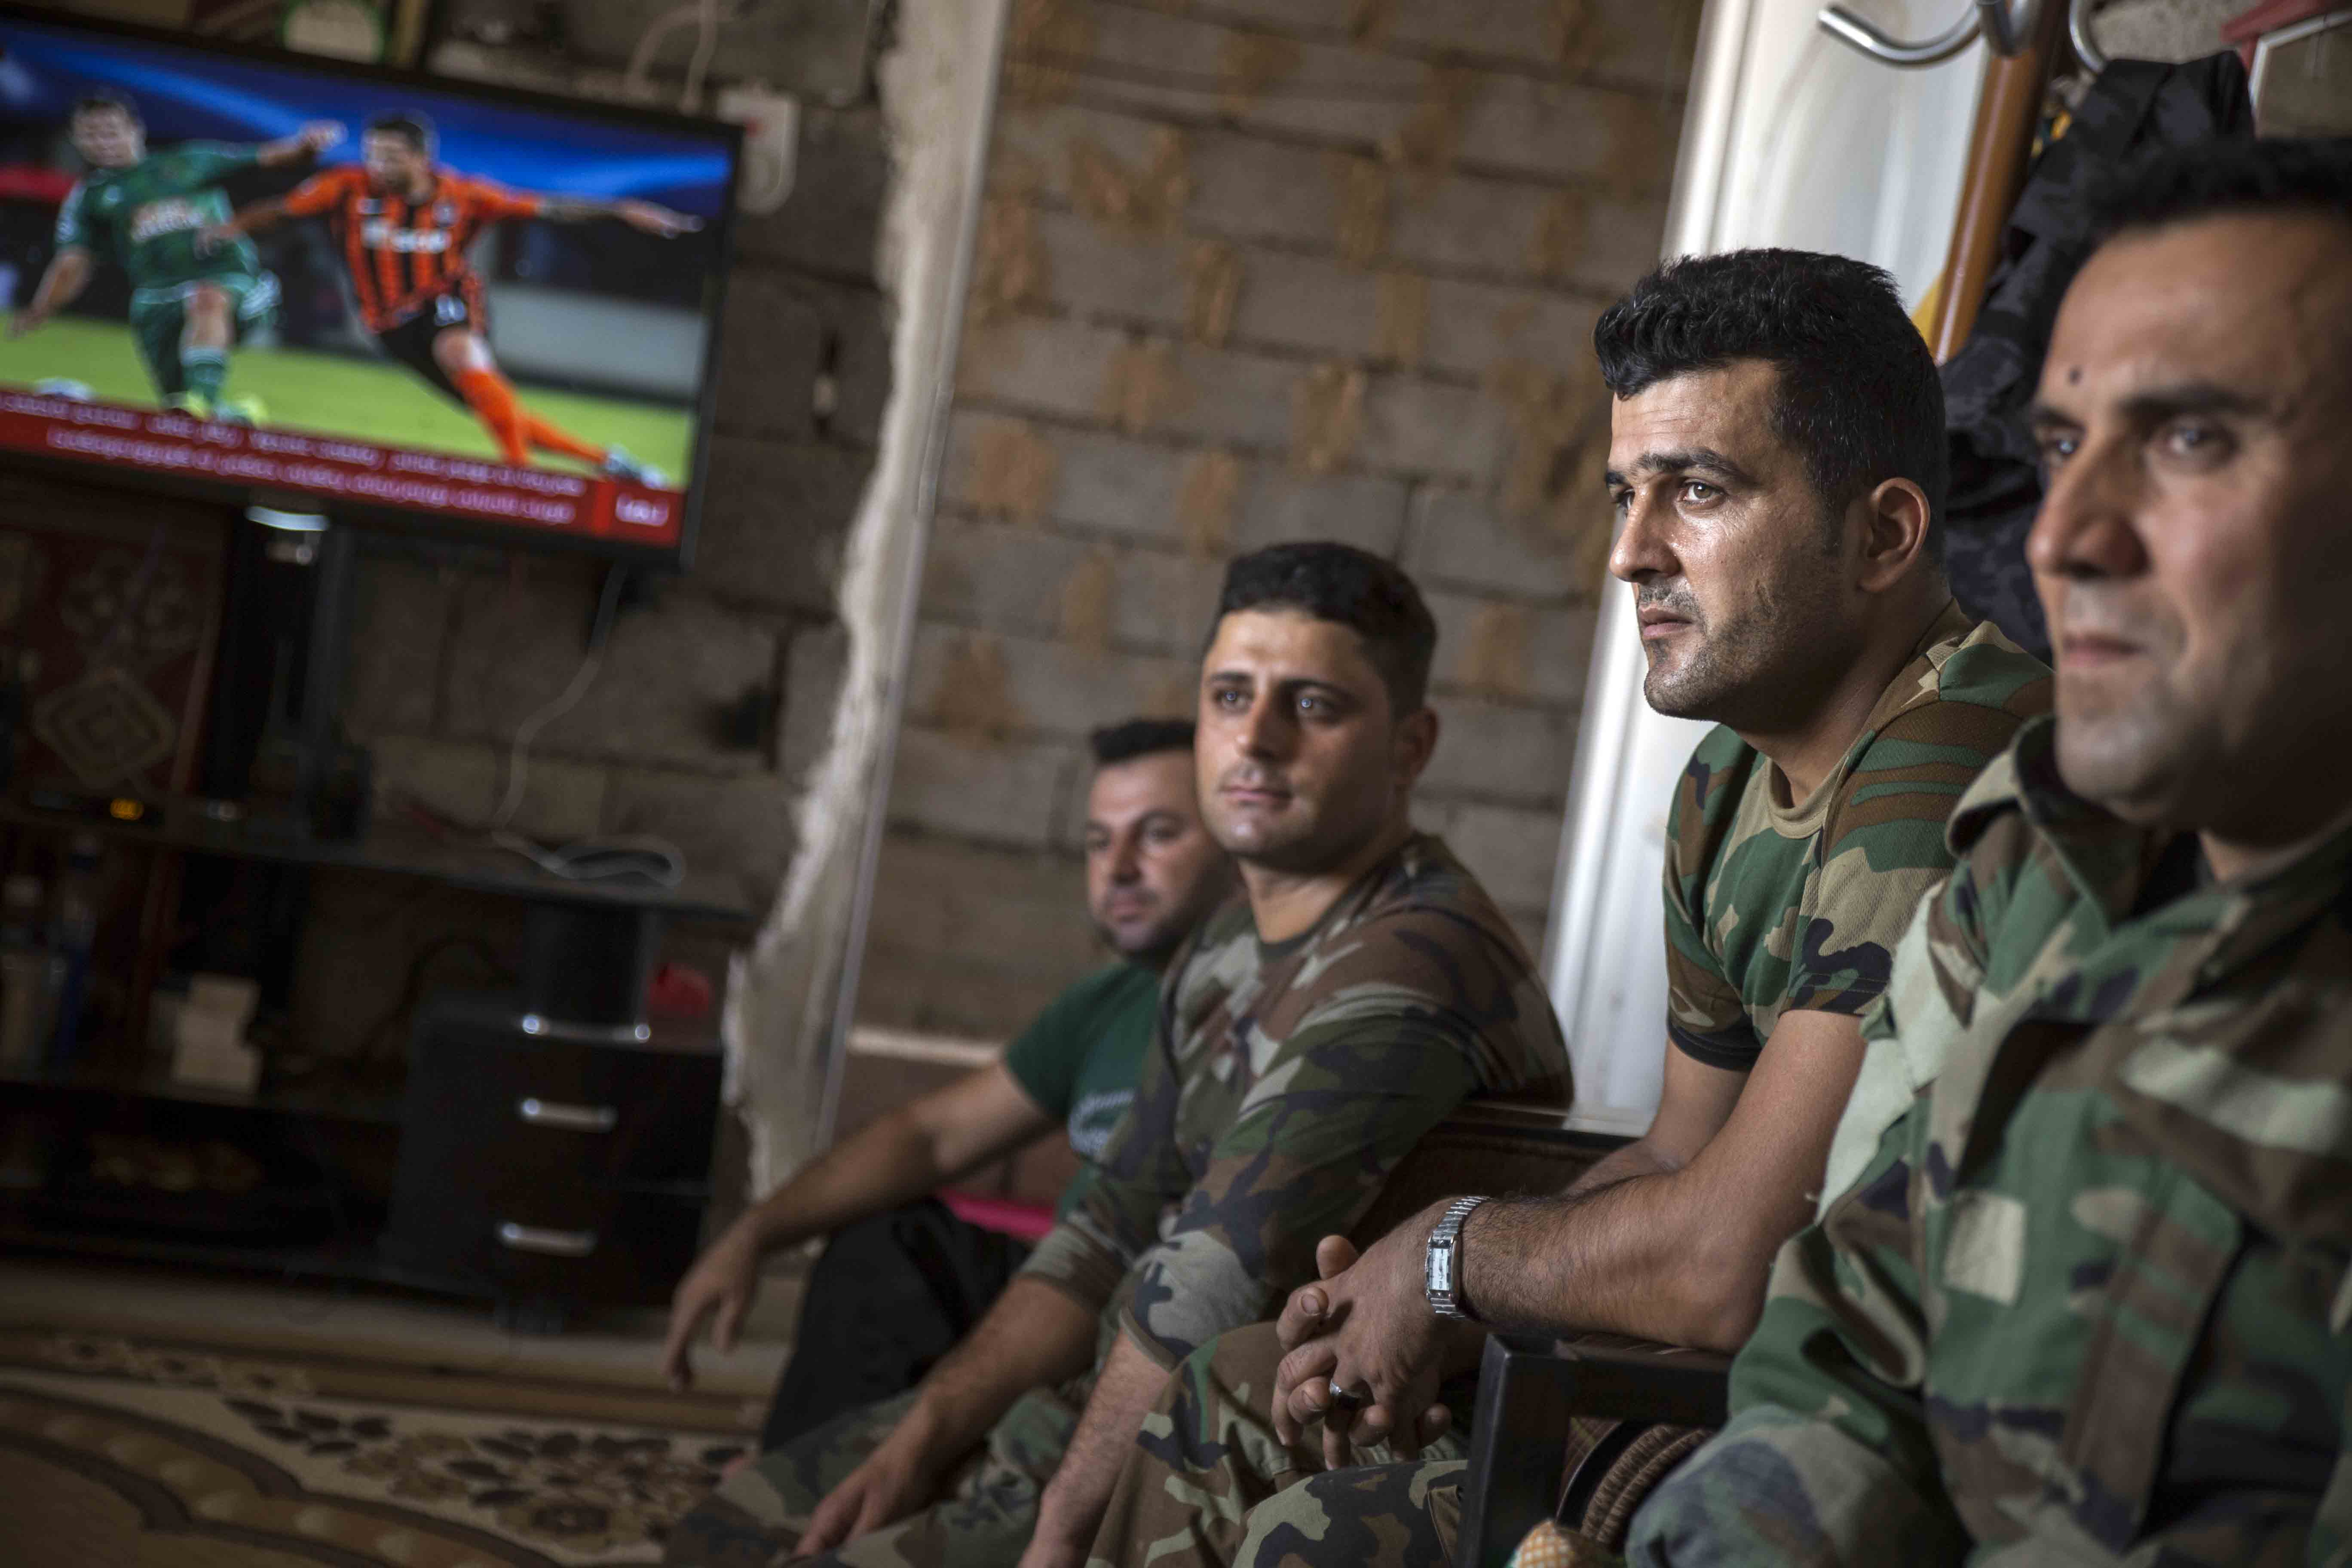 Peshmerga fighters listen to their commander. The house where they sit was captured from Islamic State and is now used as a Peshmerga base.